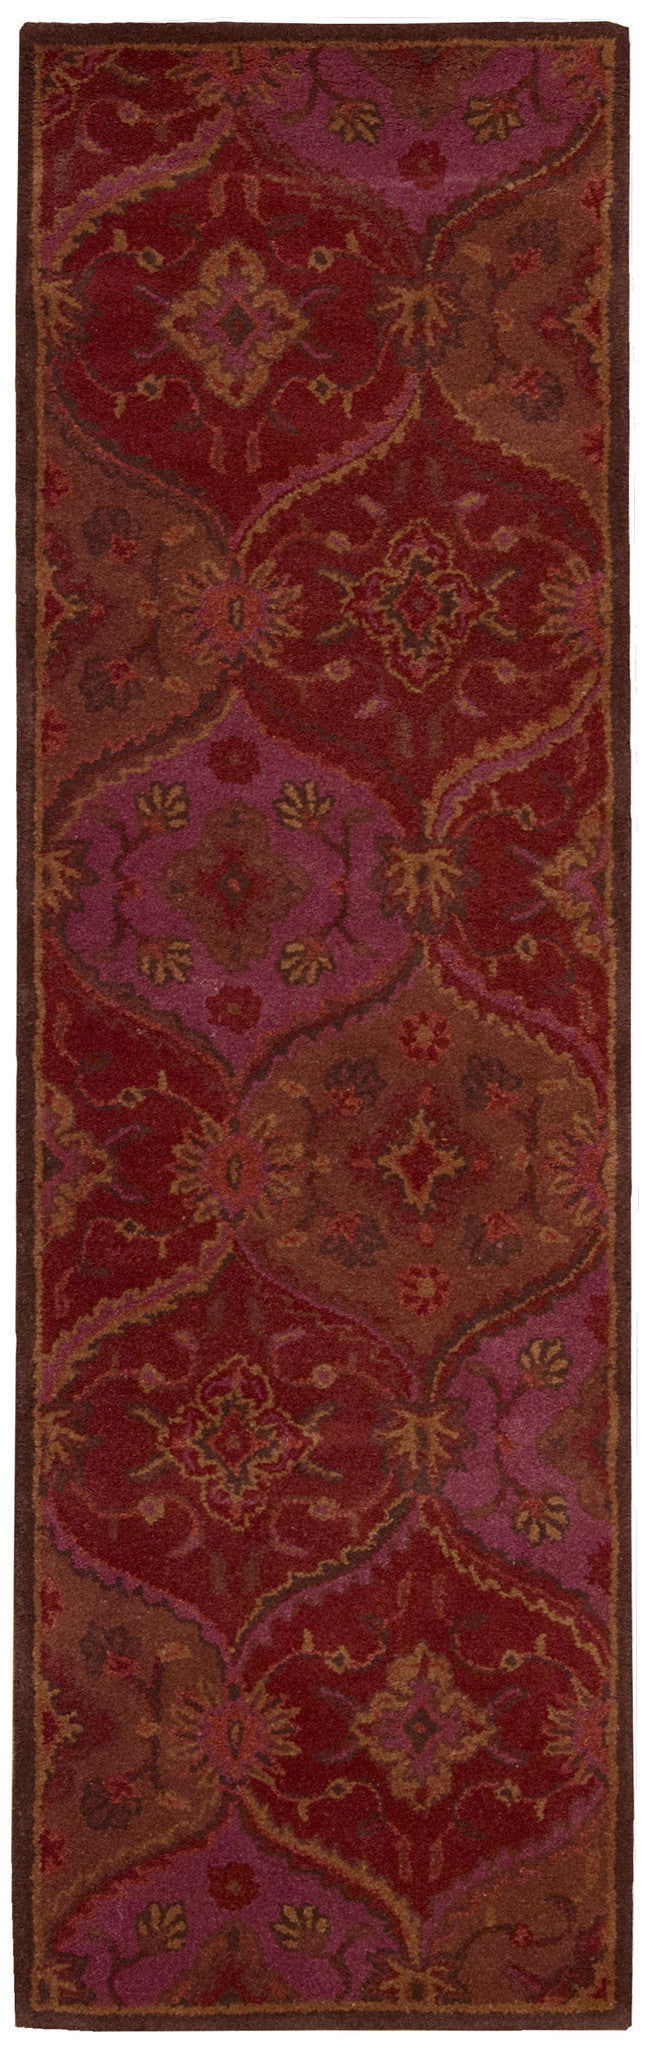 Nourison India House Red Area Rug IH88 RED